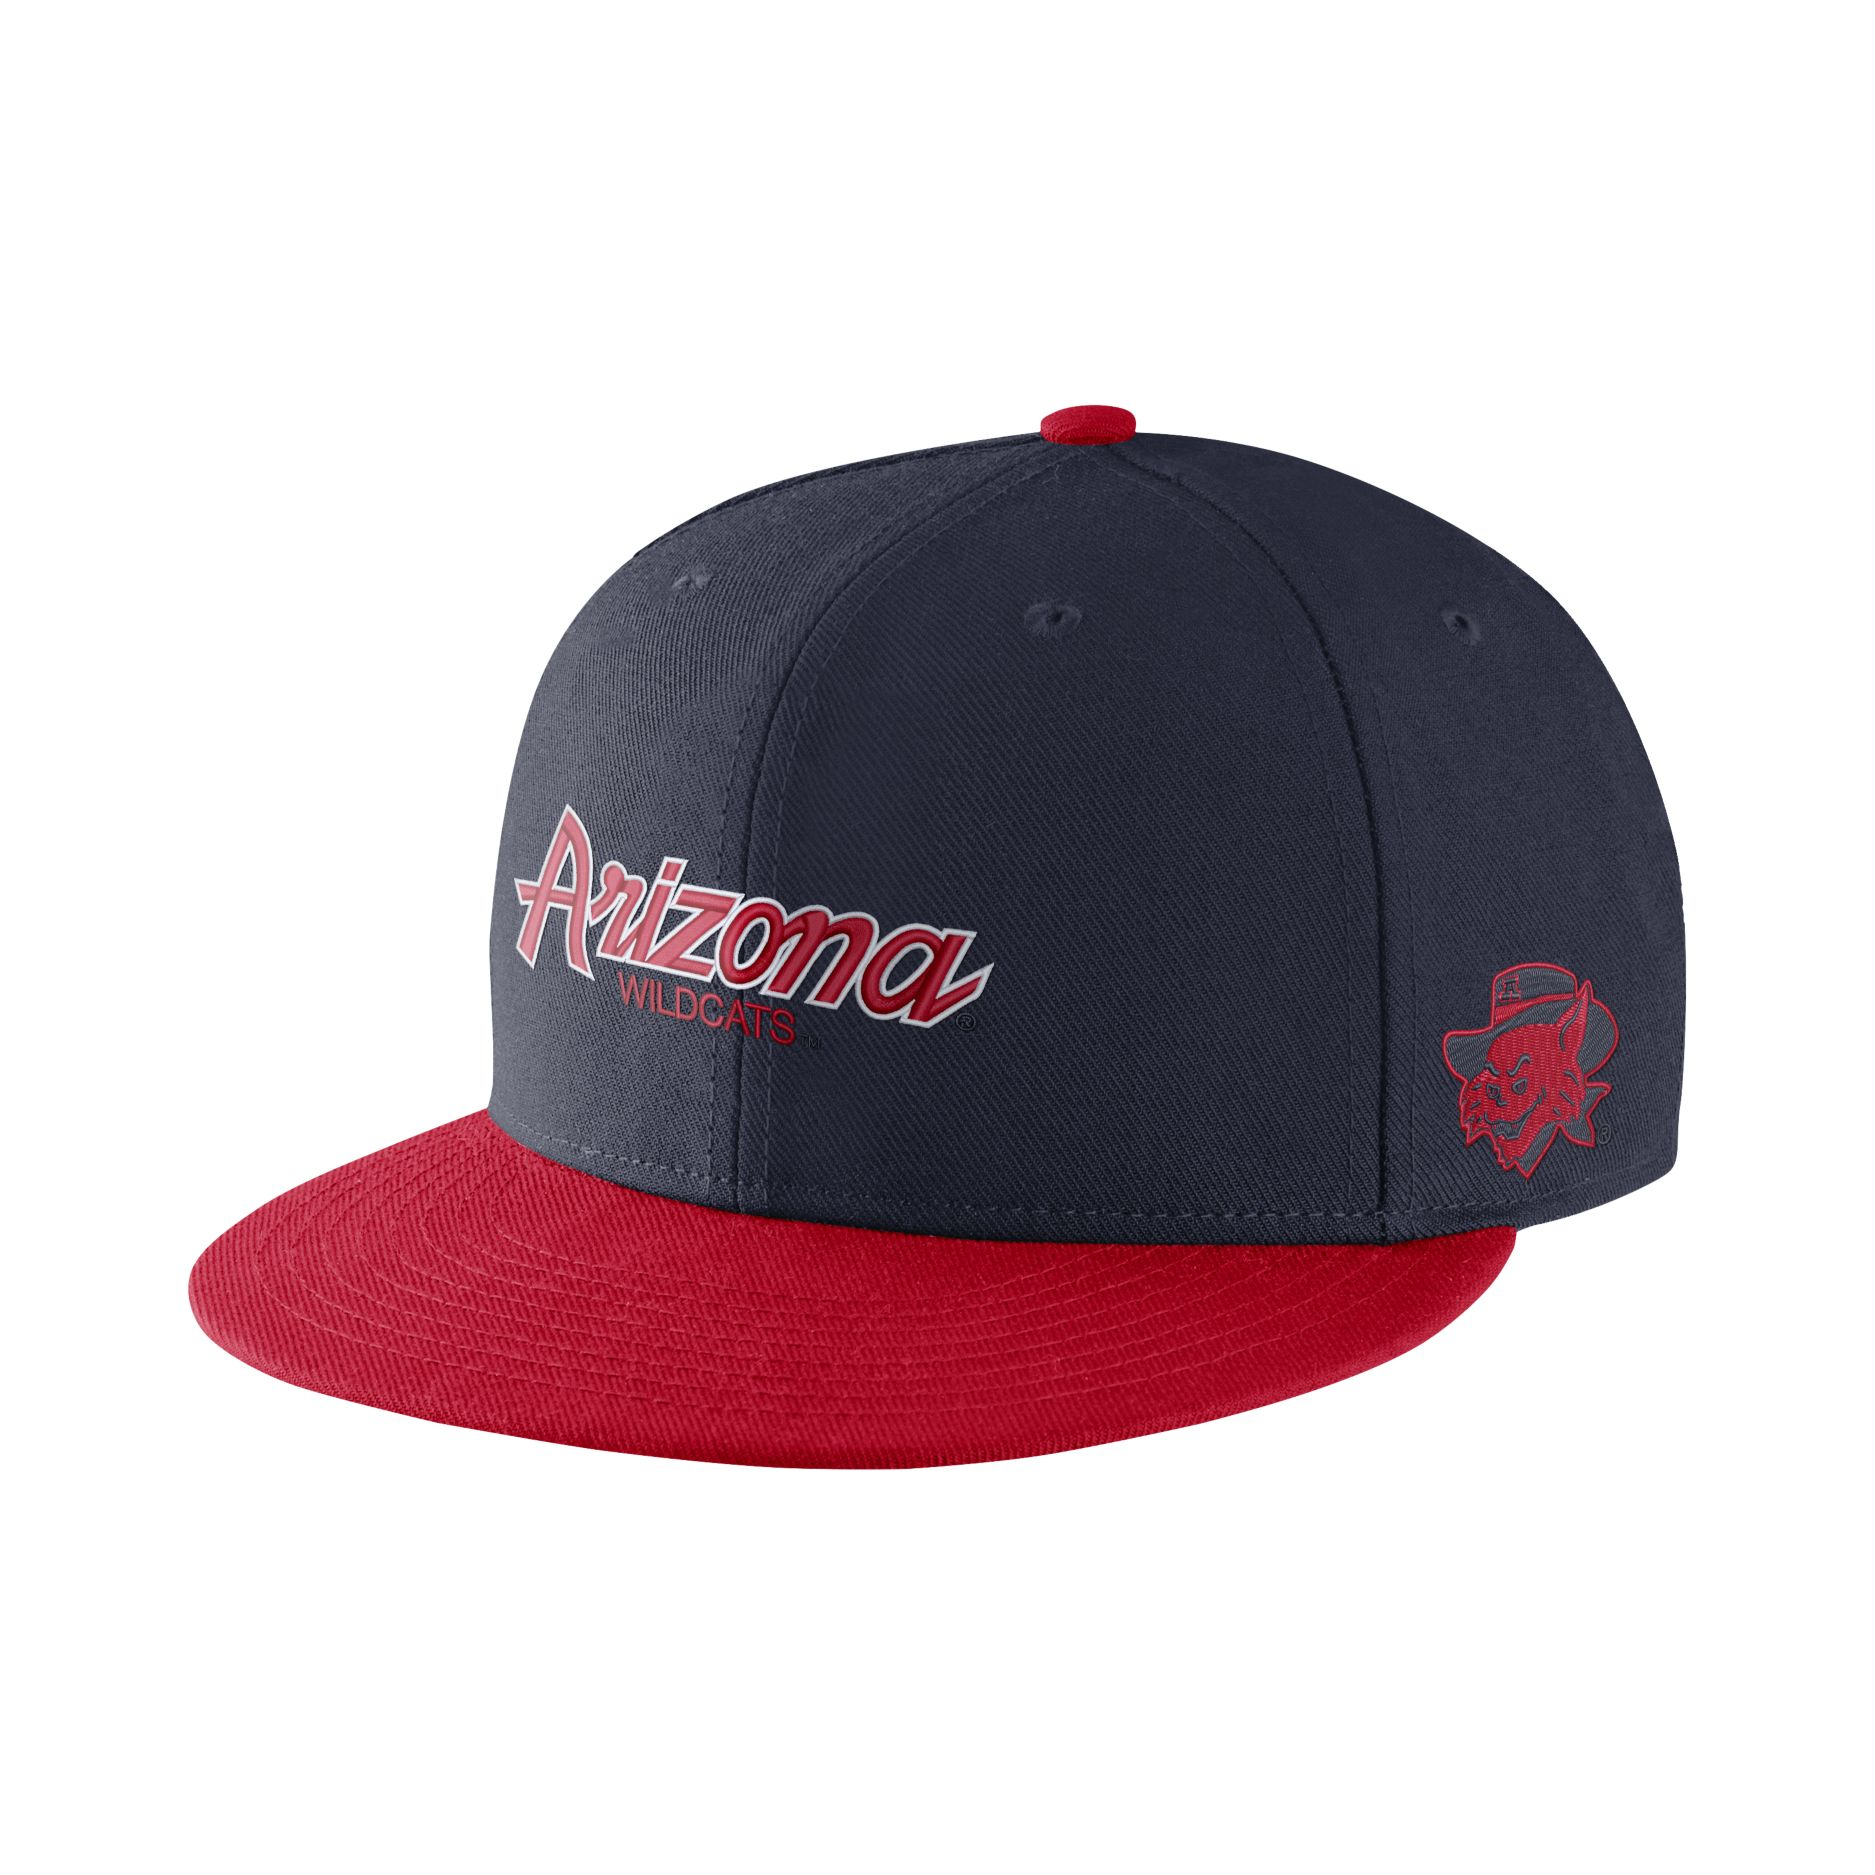 Cover Image For Nike: Arizona Wildcats Sports Specialties True Adjustable